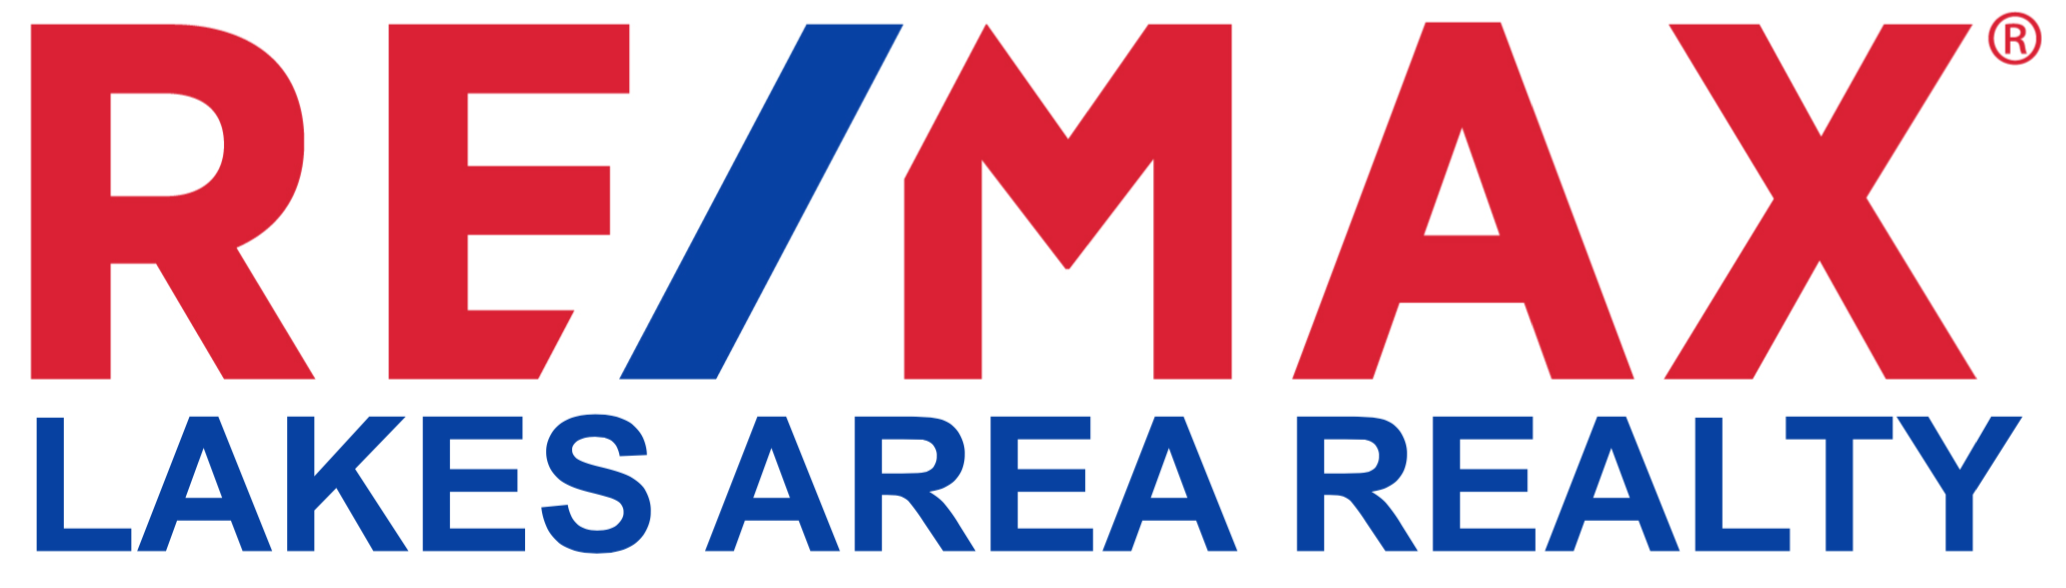 Re Max Lakes Area Realty 218 963 9554 Nisswa Mn Homes